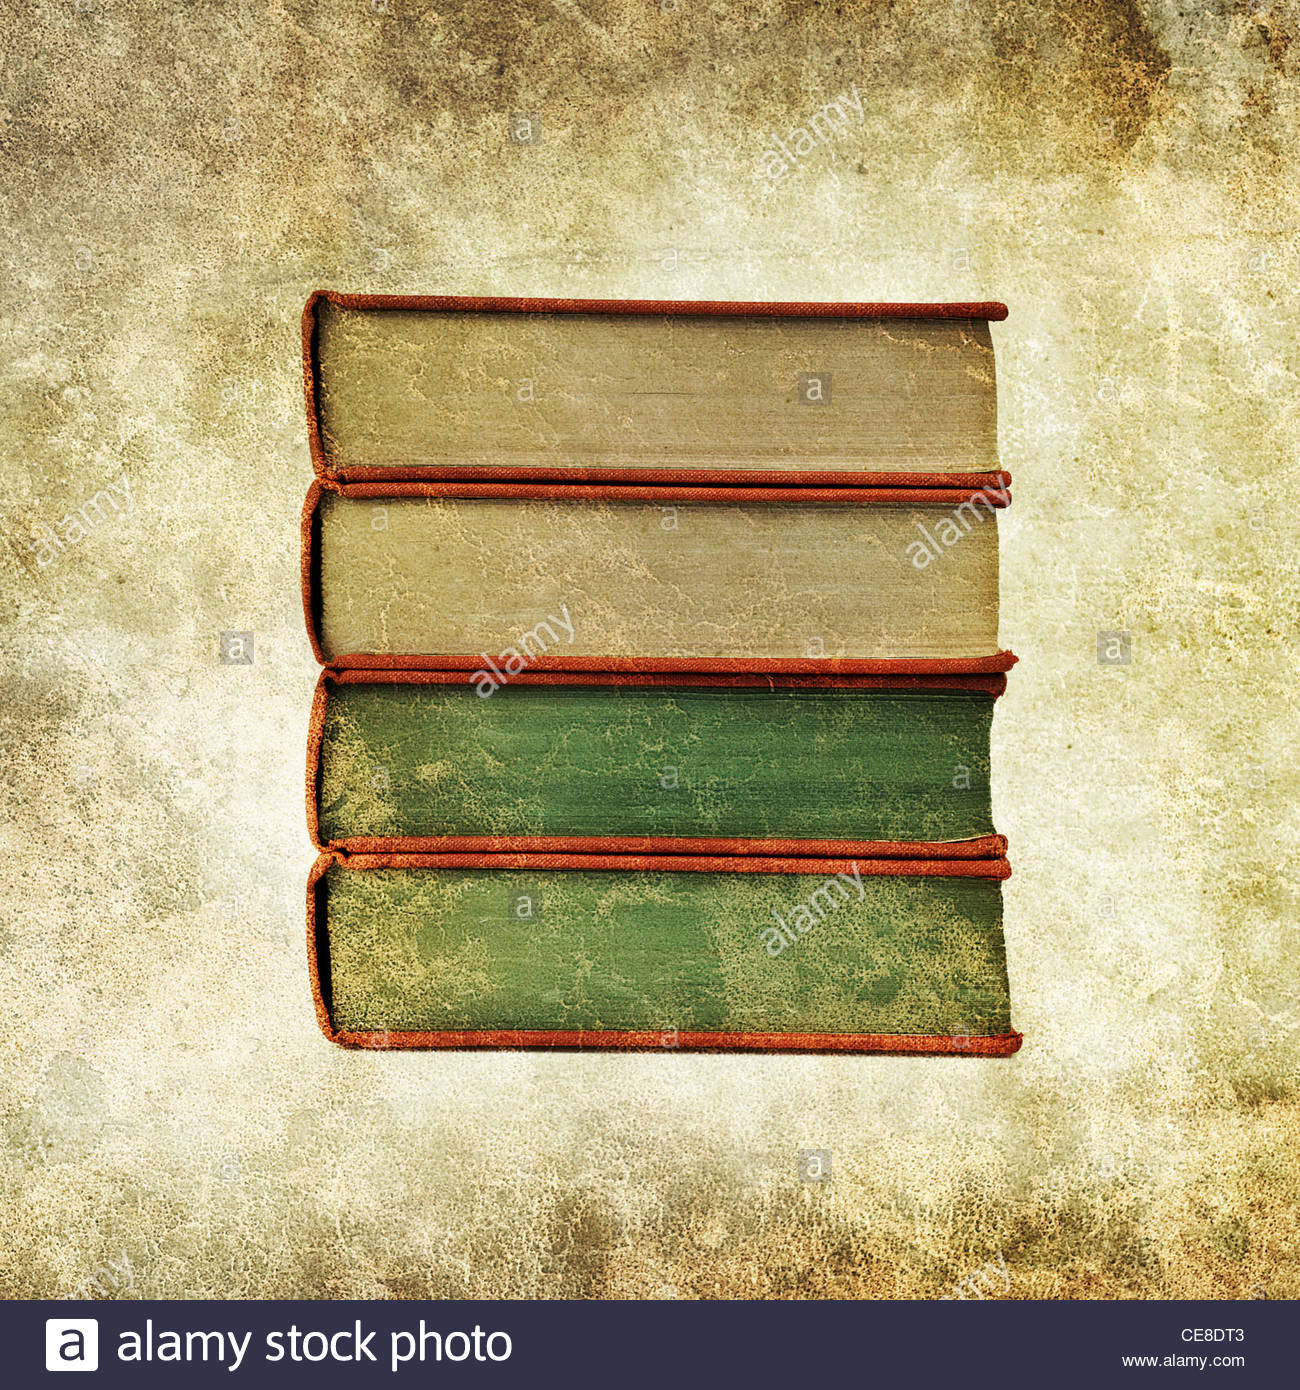 old book pile - Stock Image